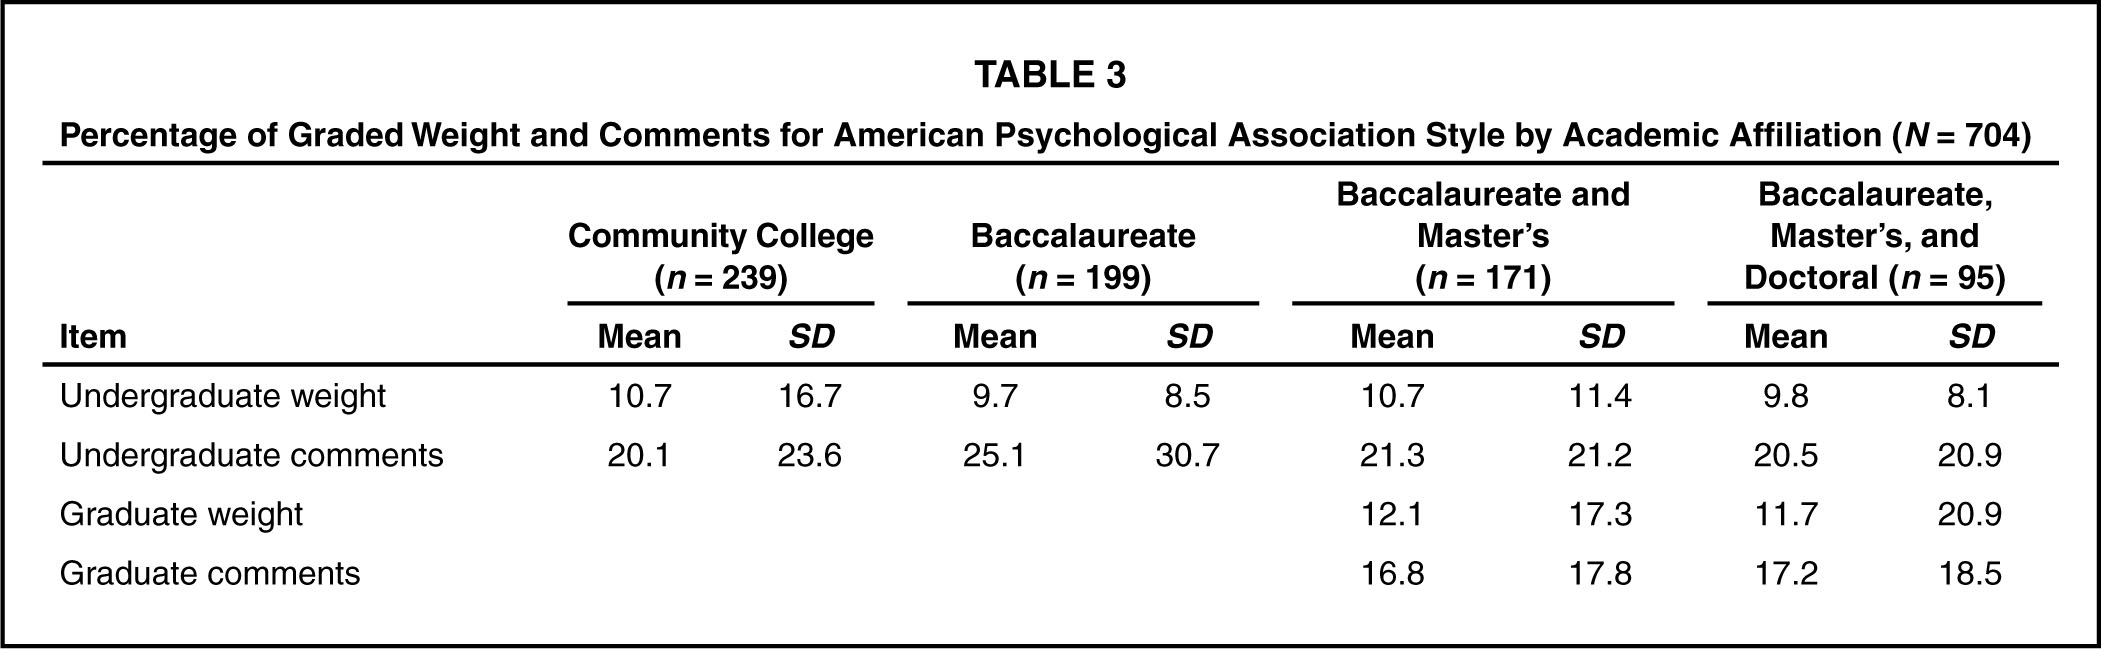 american psychological association style Apa style central is a learning, writing, research, and publishing platform from the american psychological association apa style central incorporates the rules of the publication manual of the american psychological association and simplifies the process of using apa style.